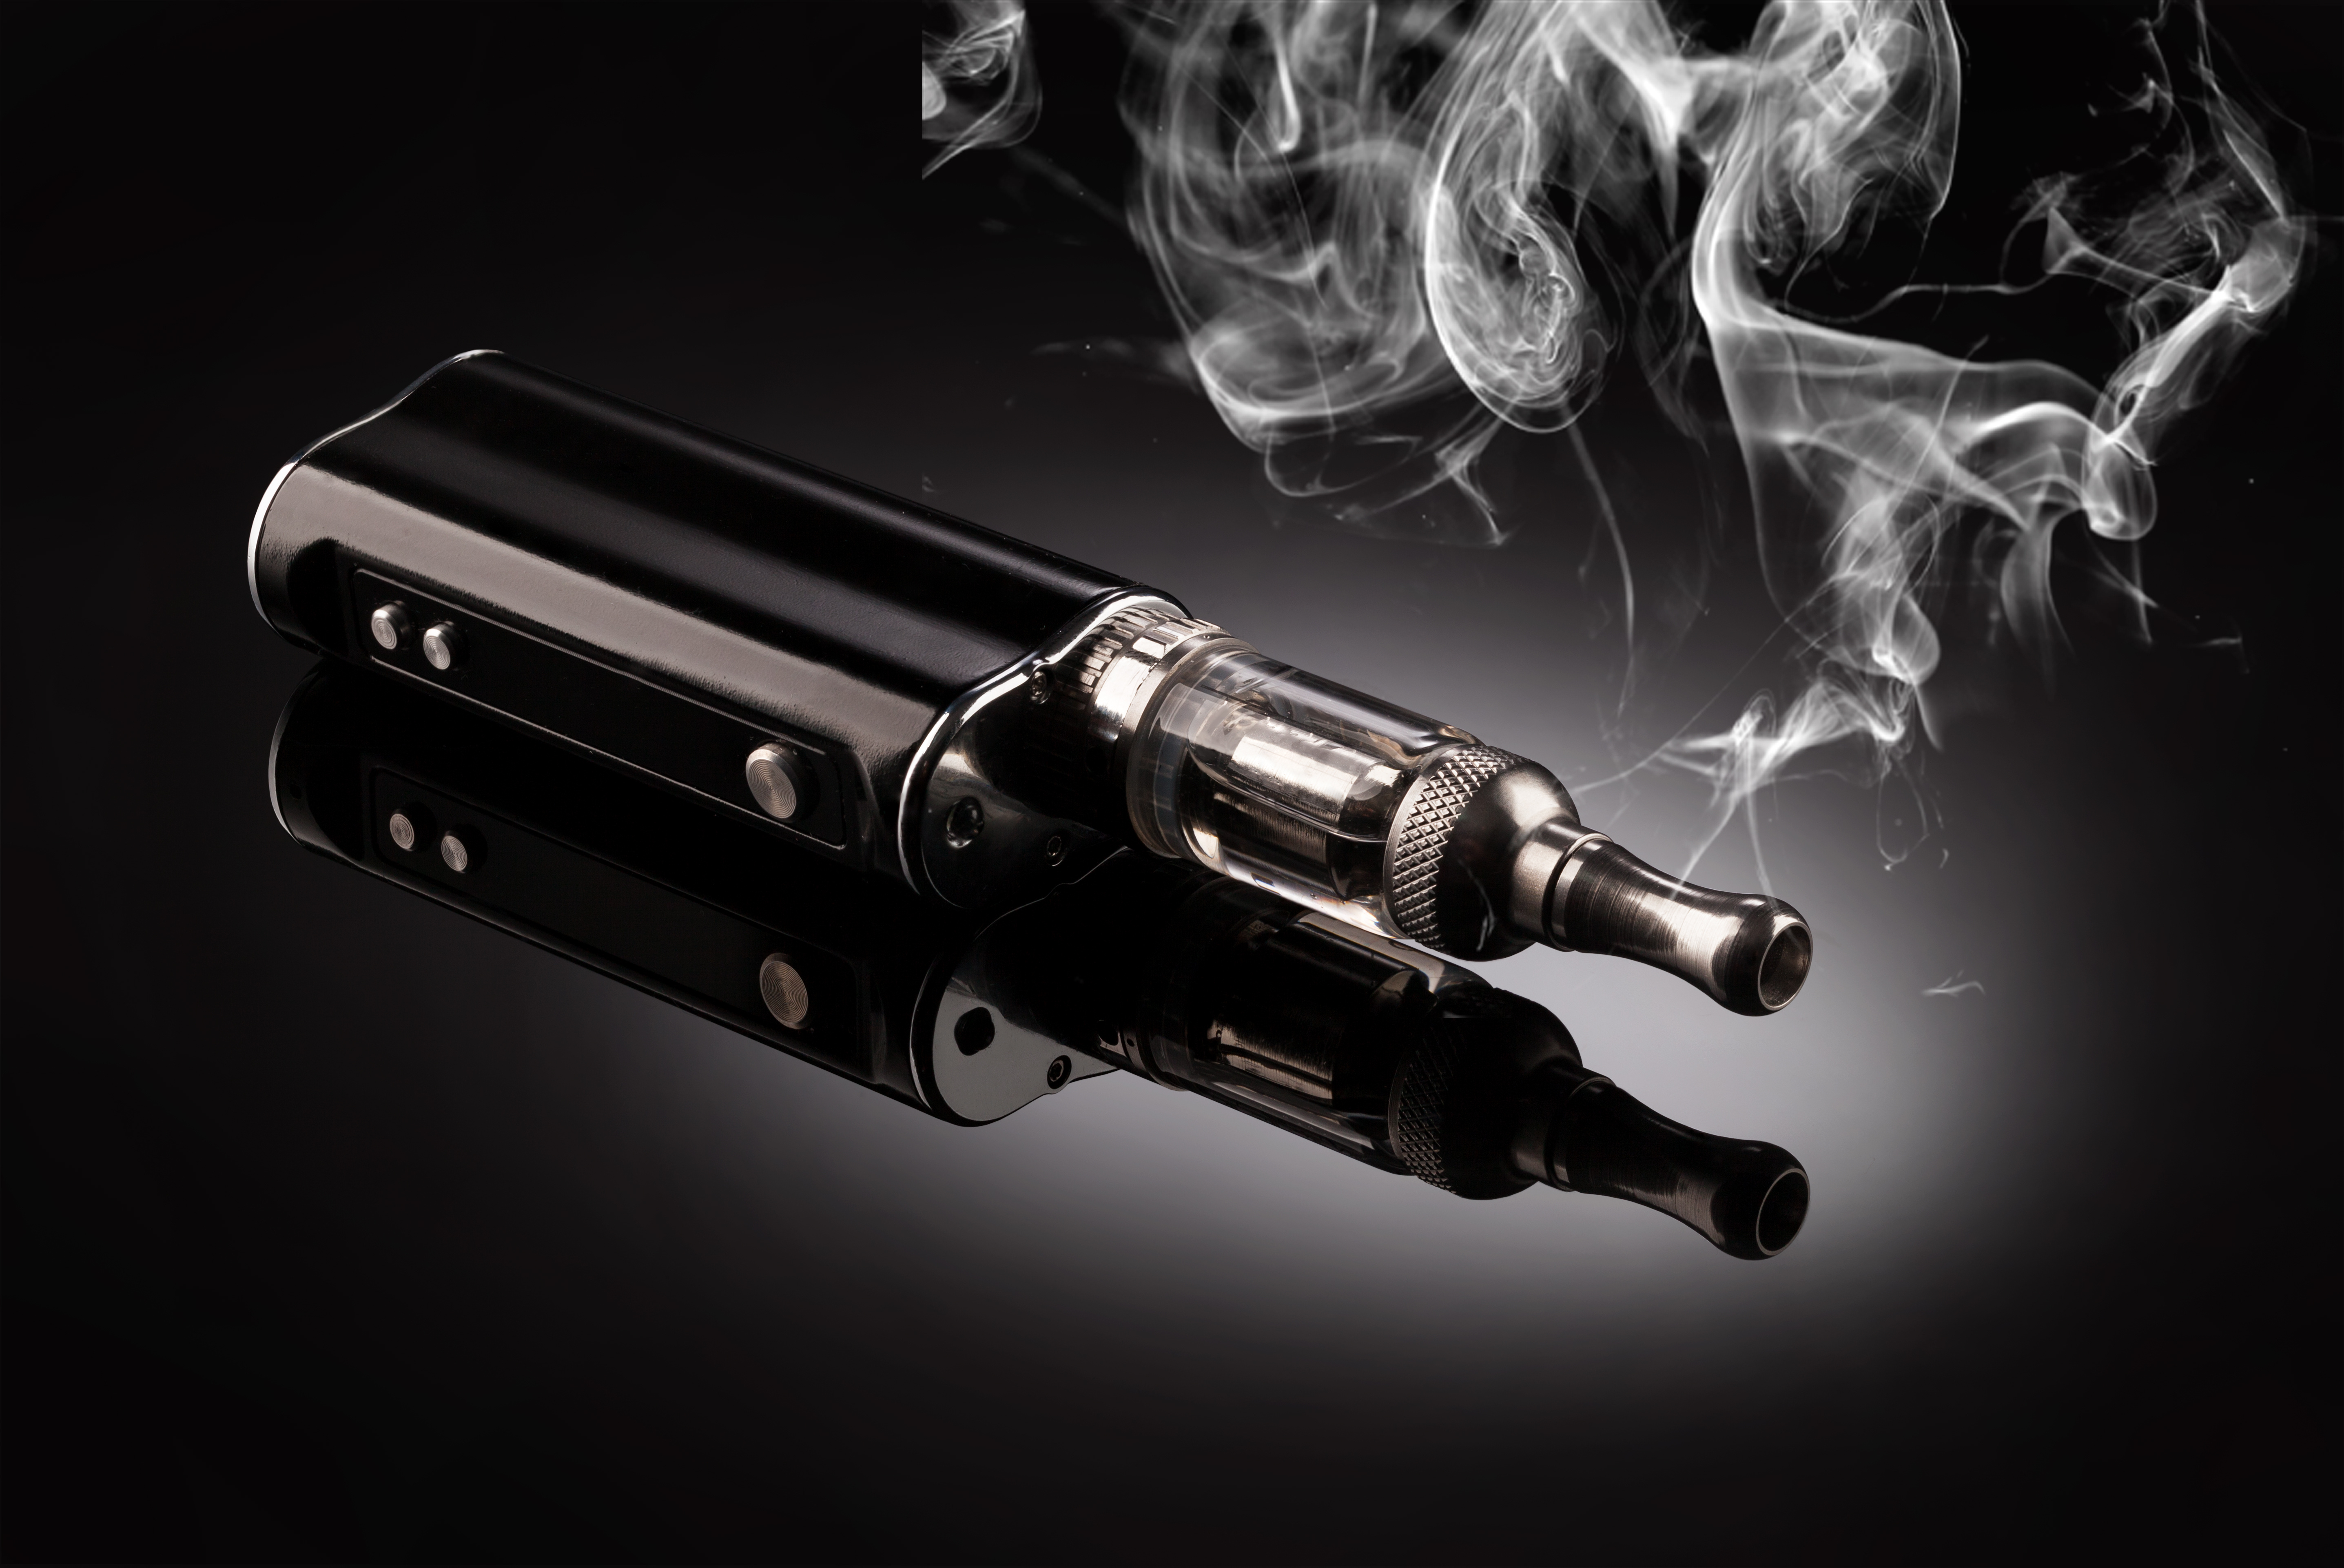 Afraid of Your E-Cigarette Exploding? 3 Tips and Facts to Know on